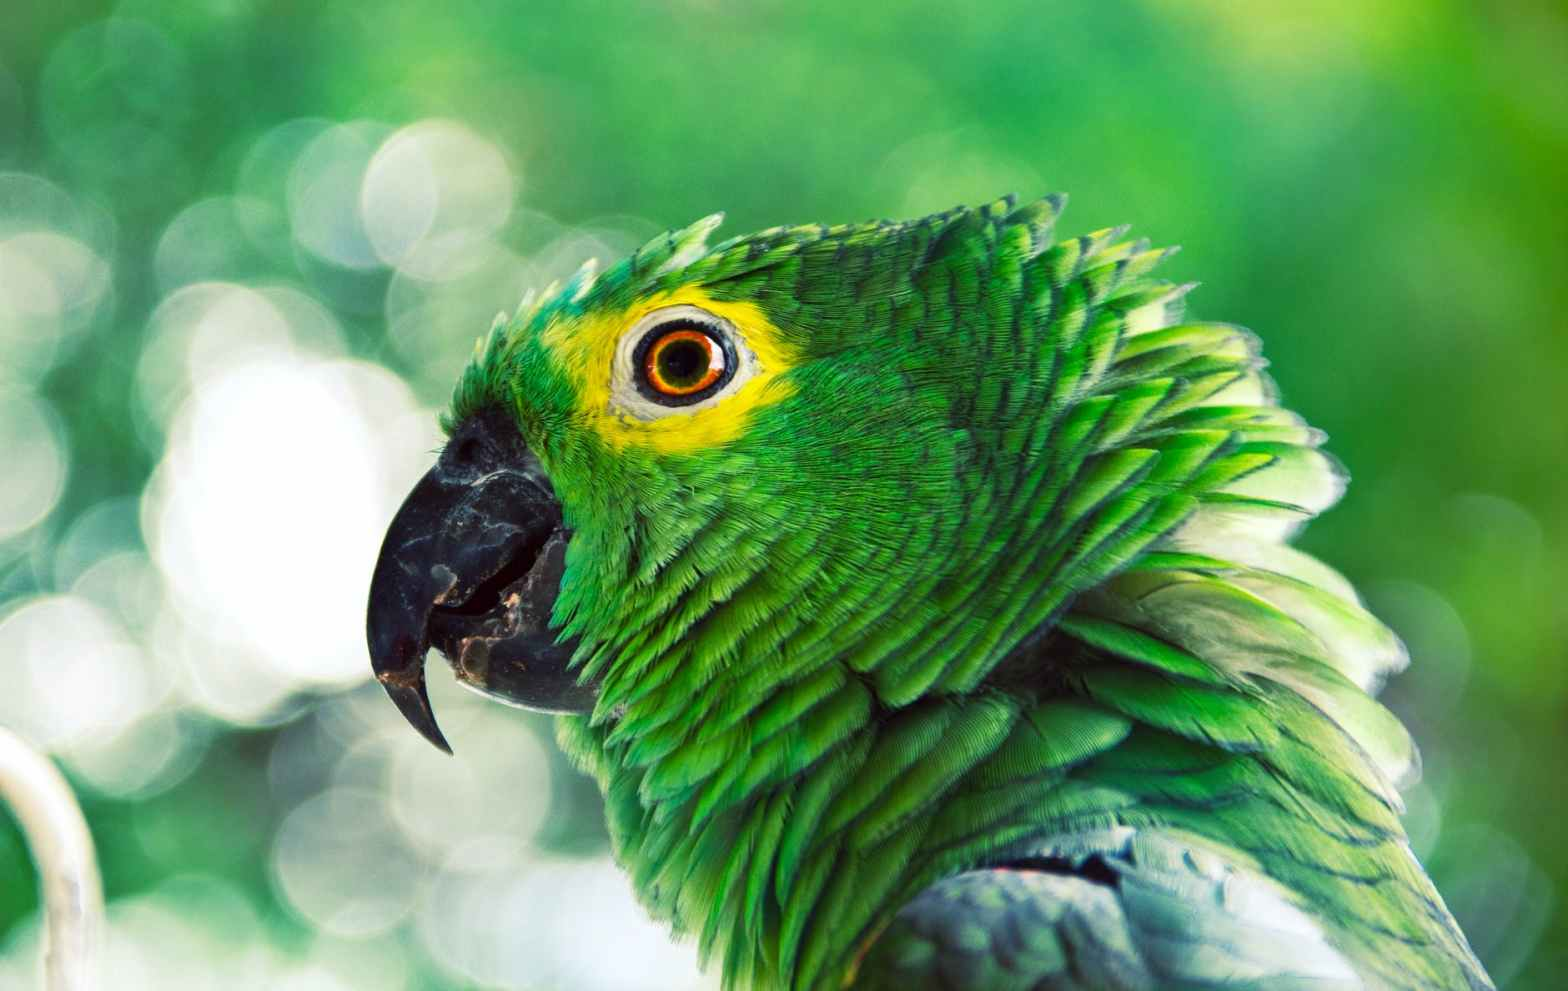 close up photo of green parrot